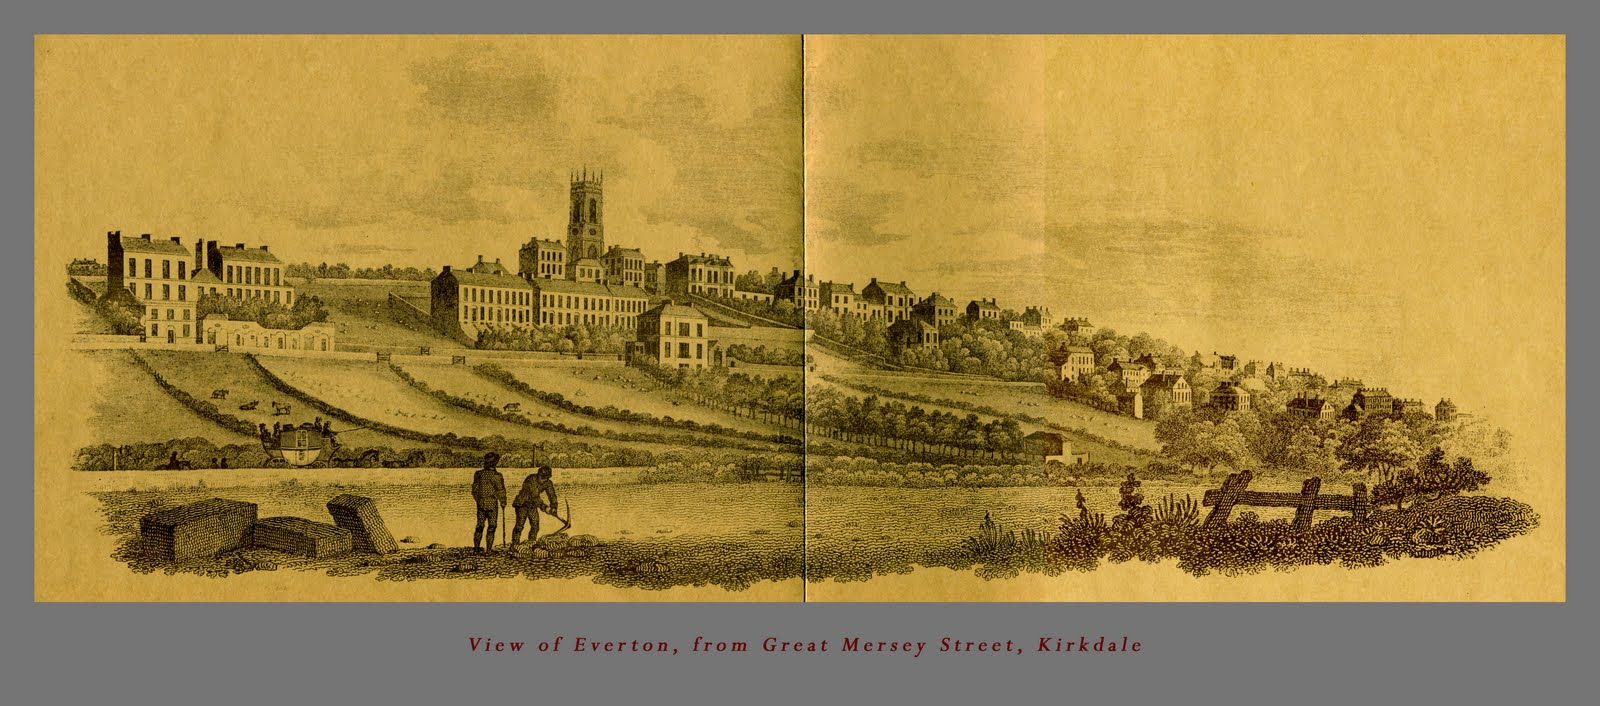 Early 19th century view of Everton Brow and St. George's Church, showing development of the ridge underway for wealthy merchants housing.